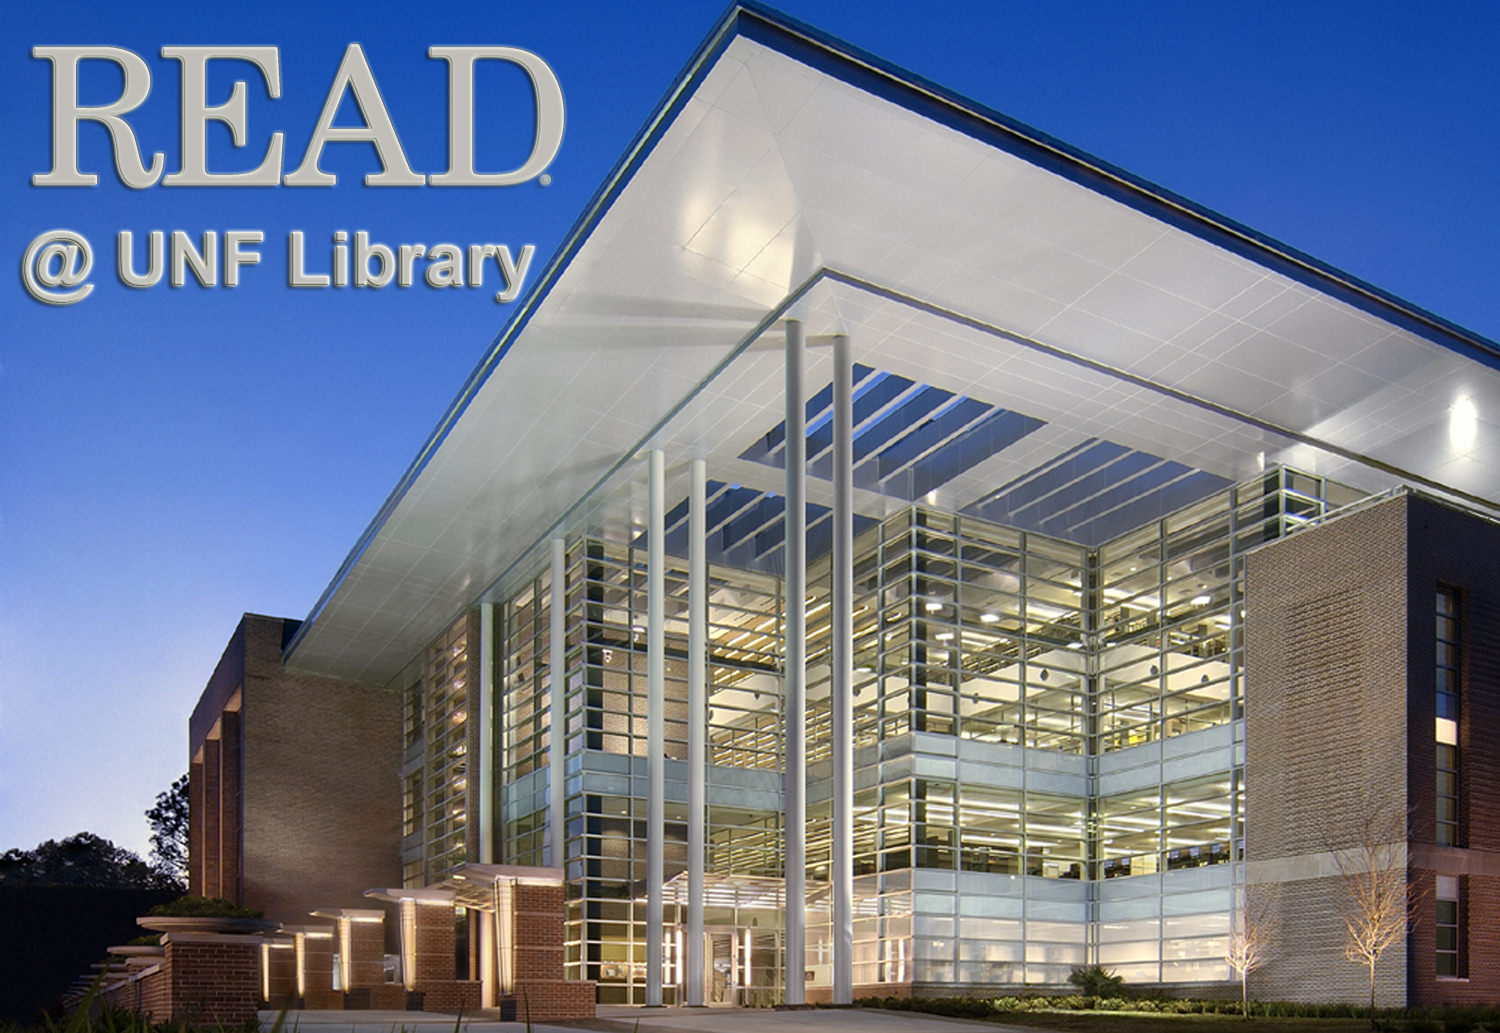 UNF Library Read Program